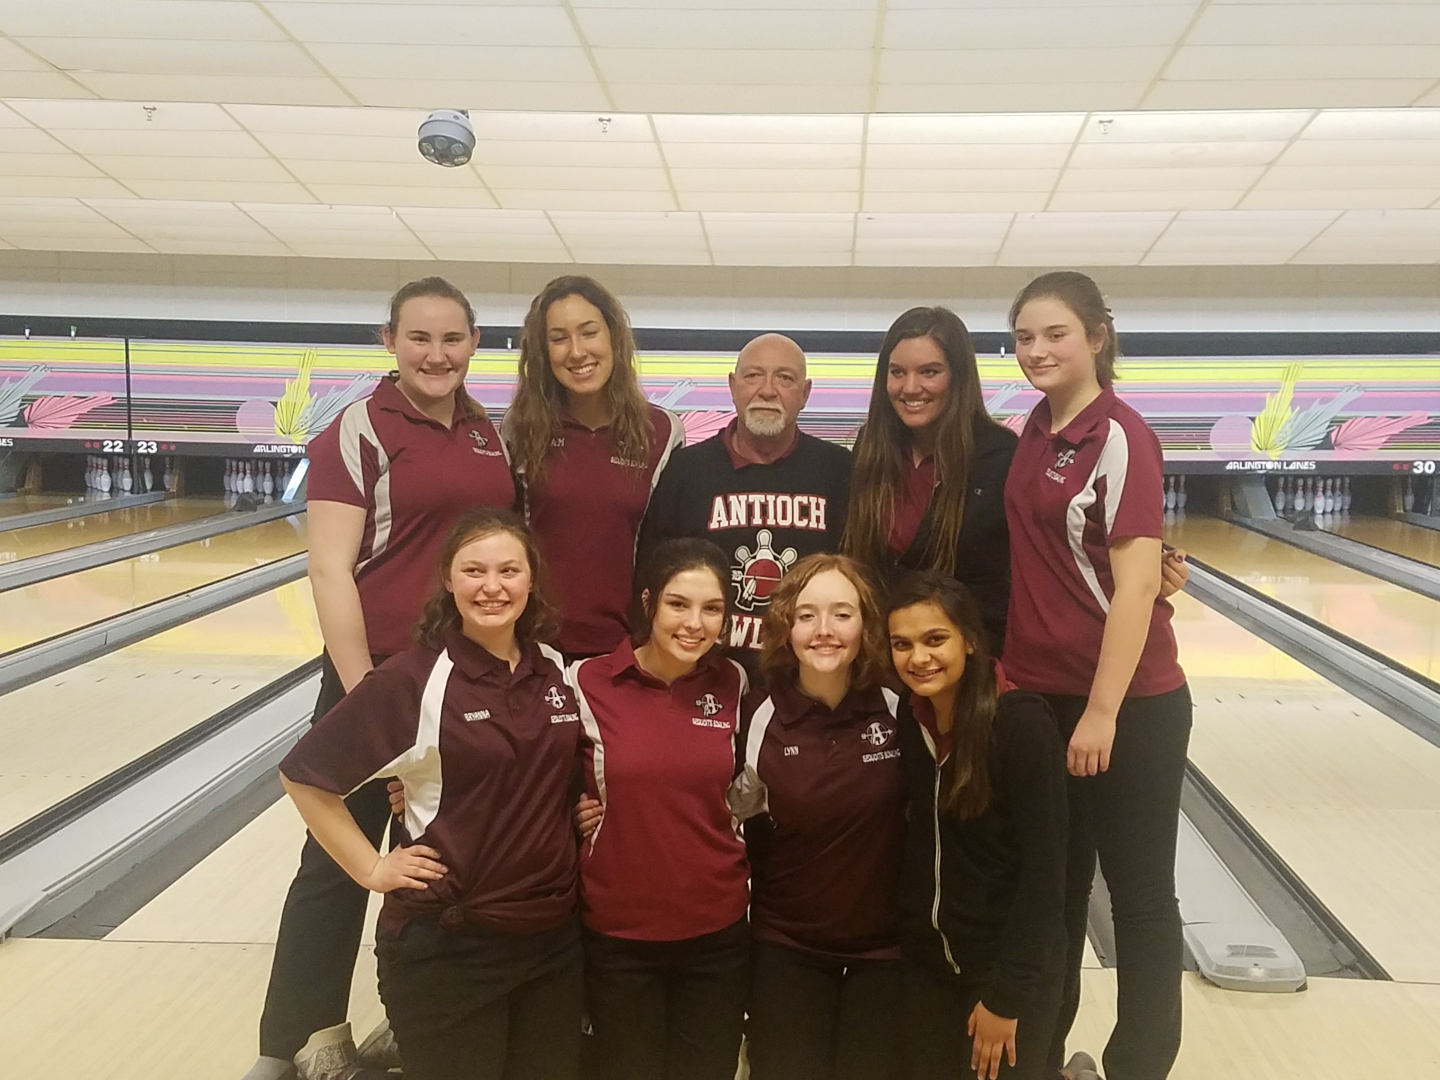 Last year's bowling team was a big role model for this years team.